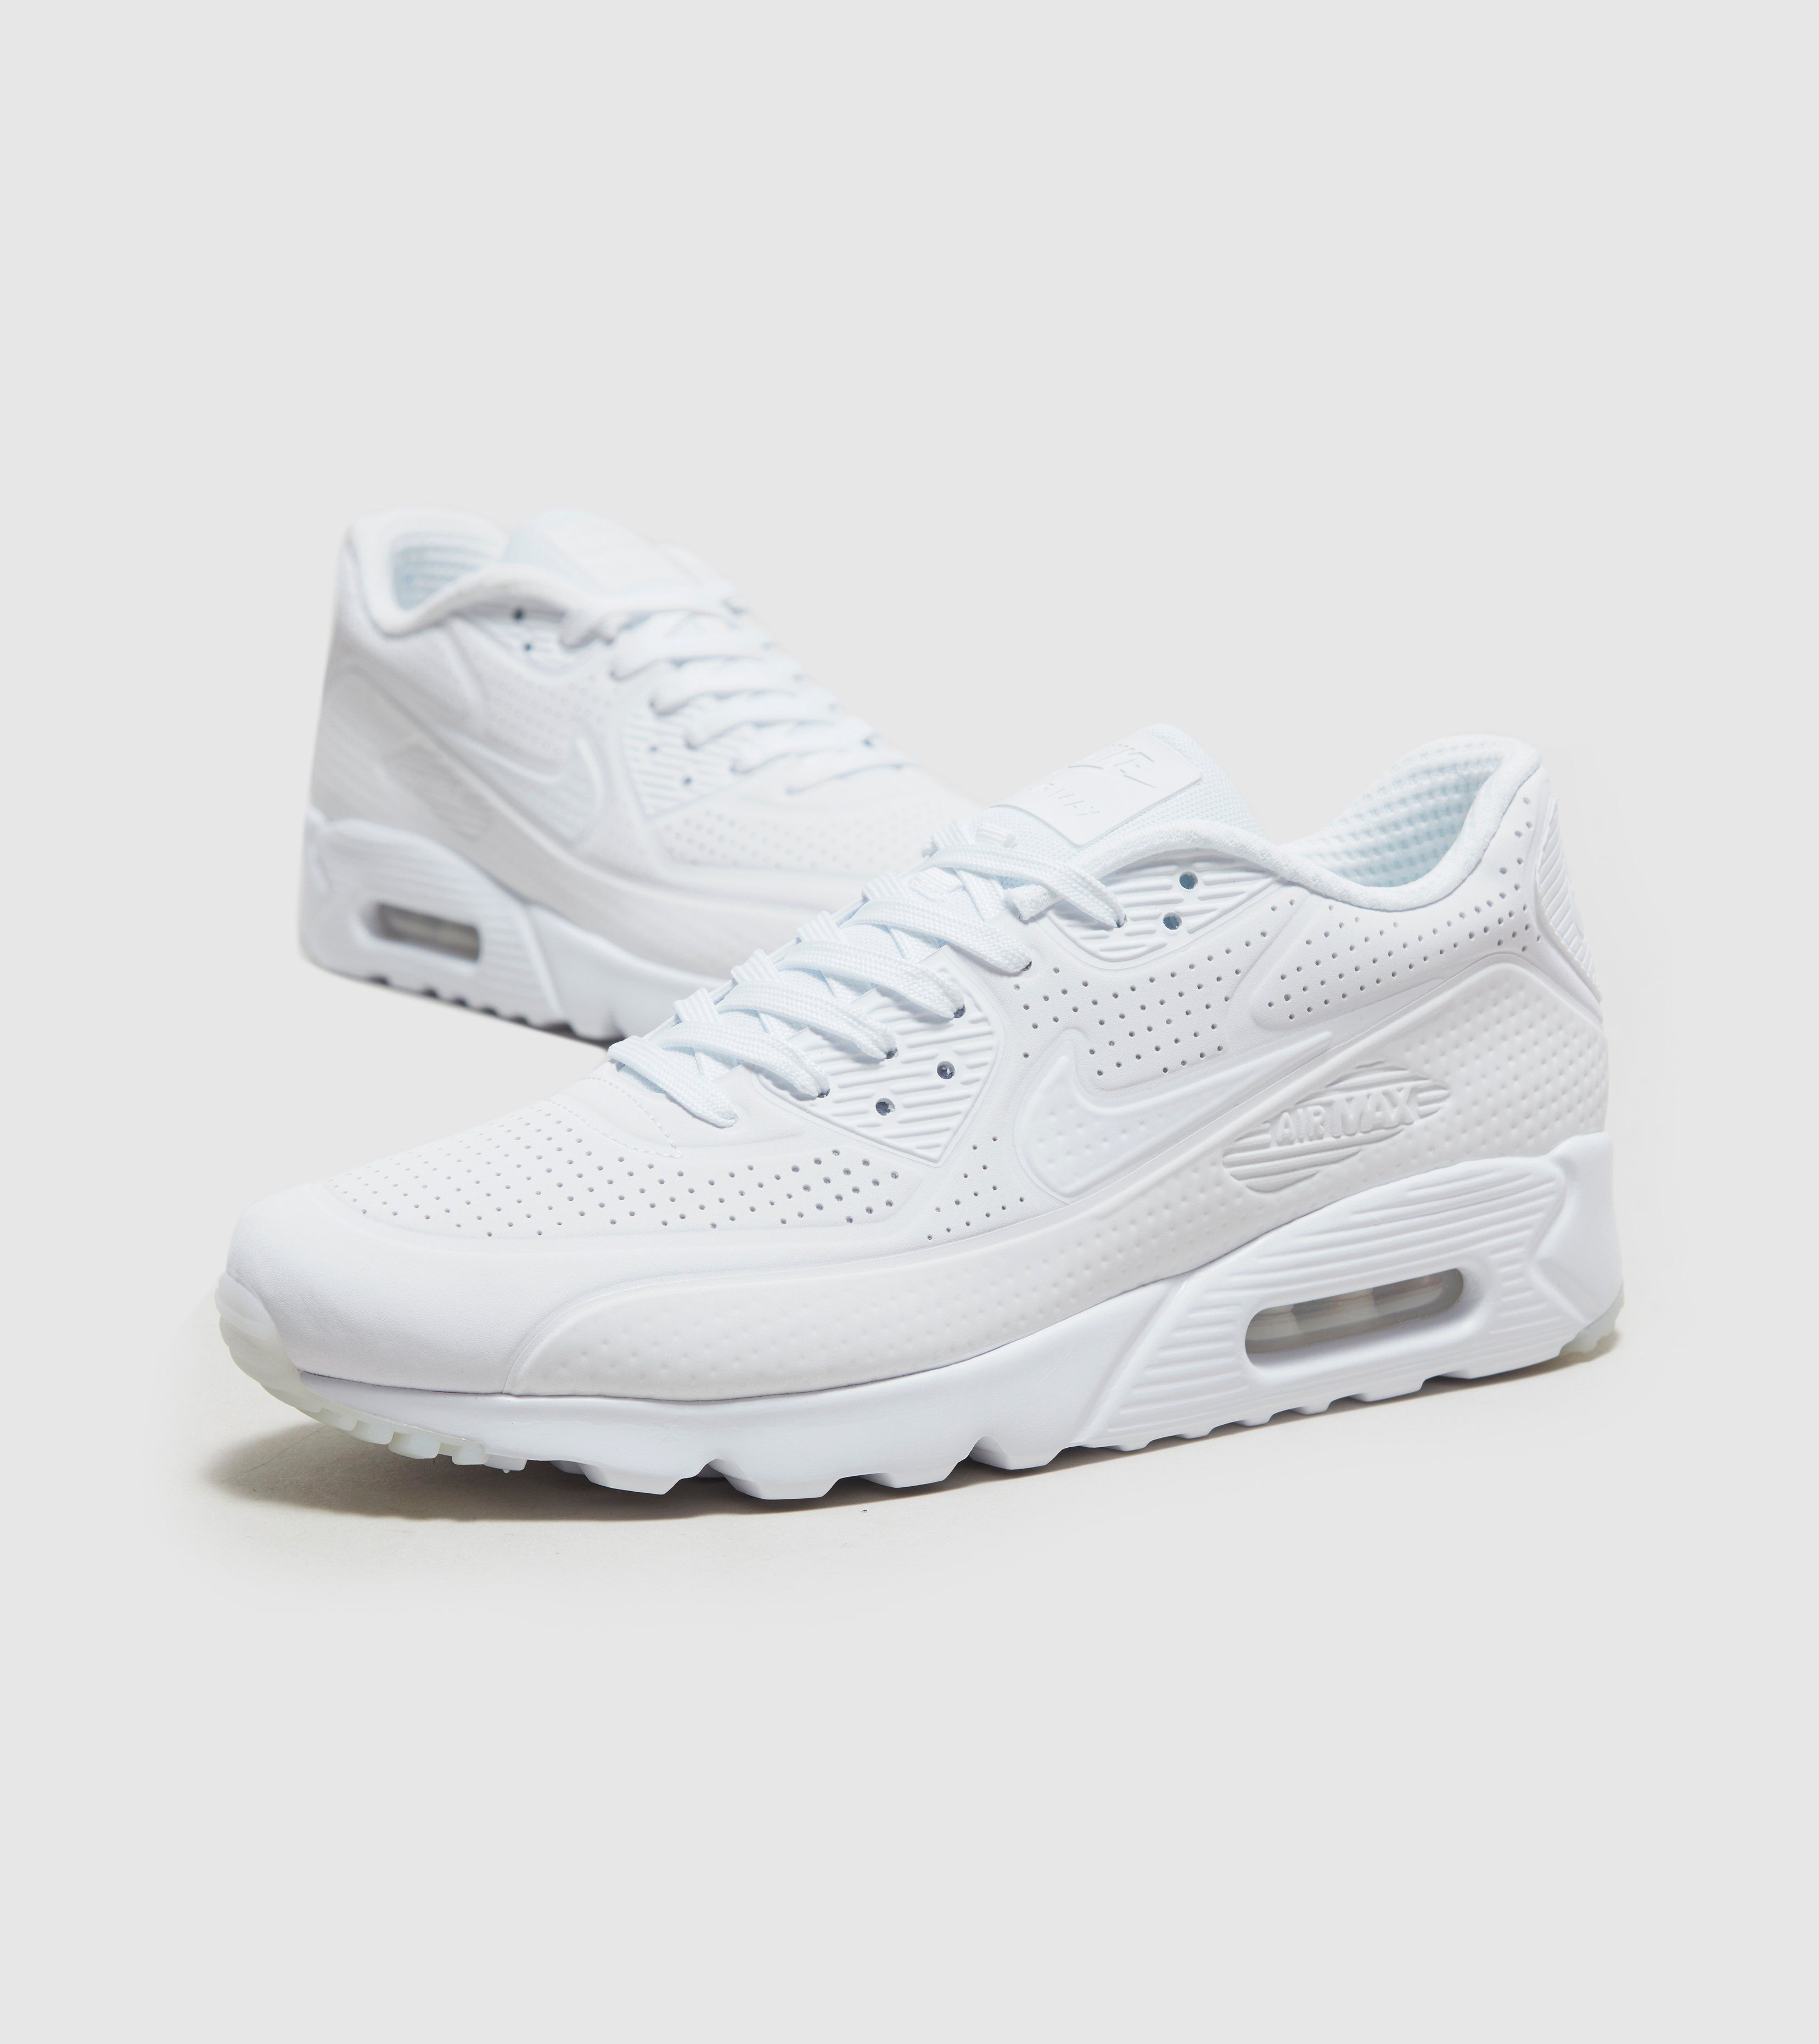 Nike Air Max 90 Ultra Moire   Size?